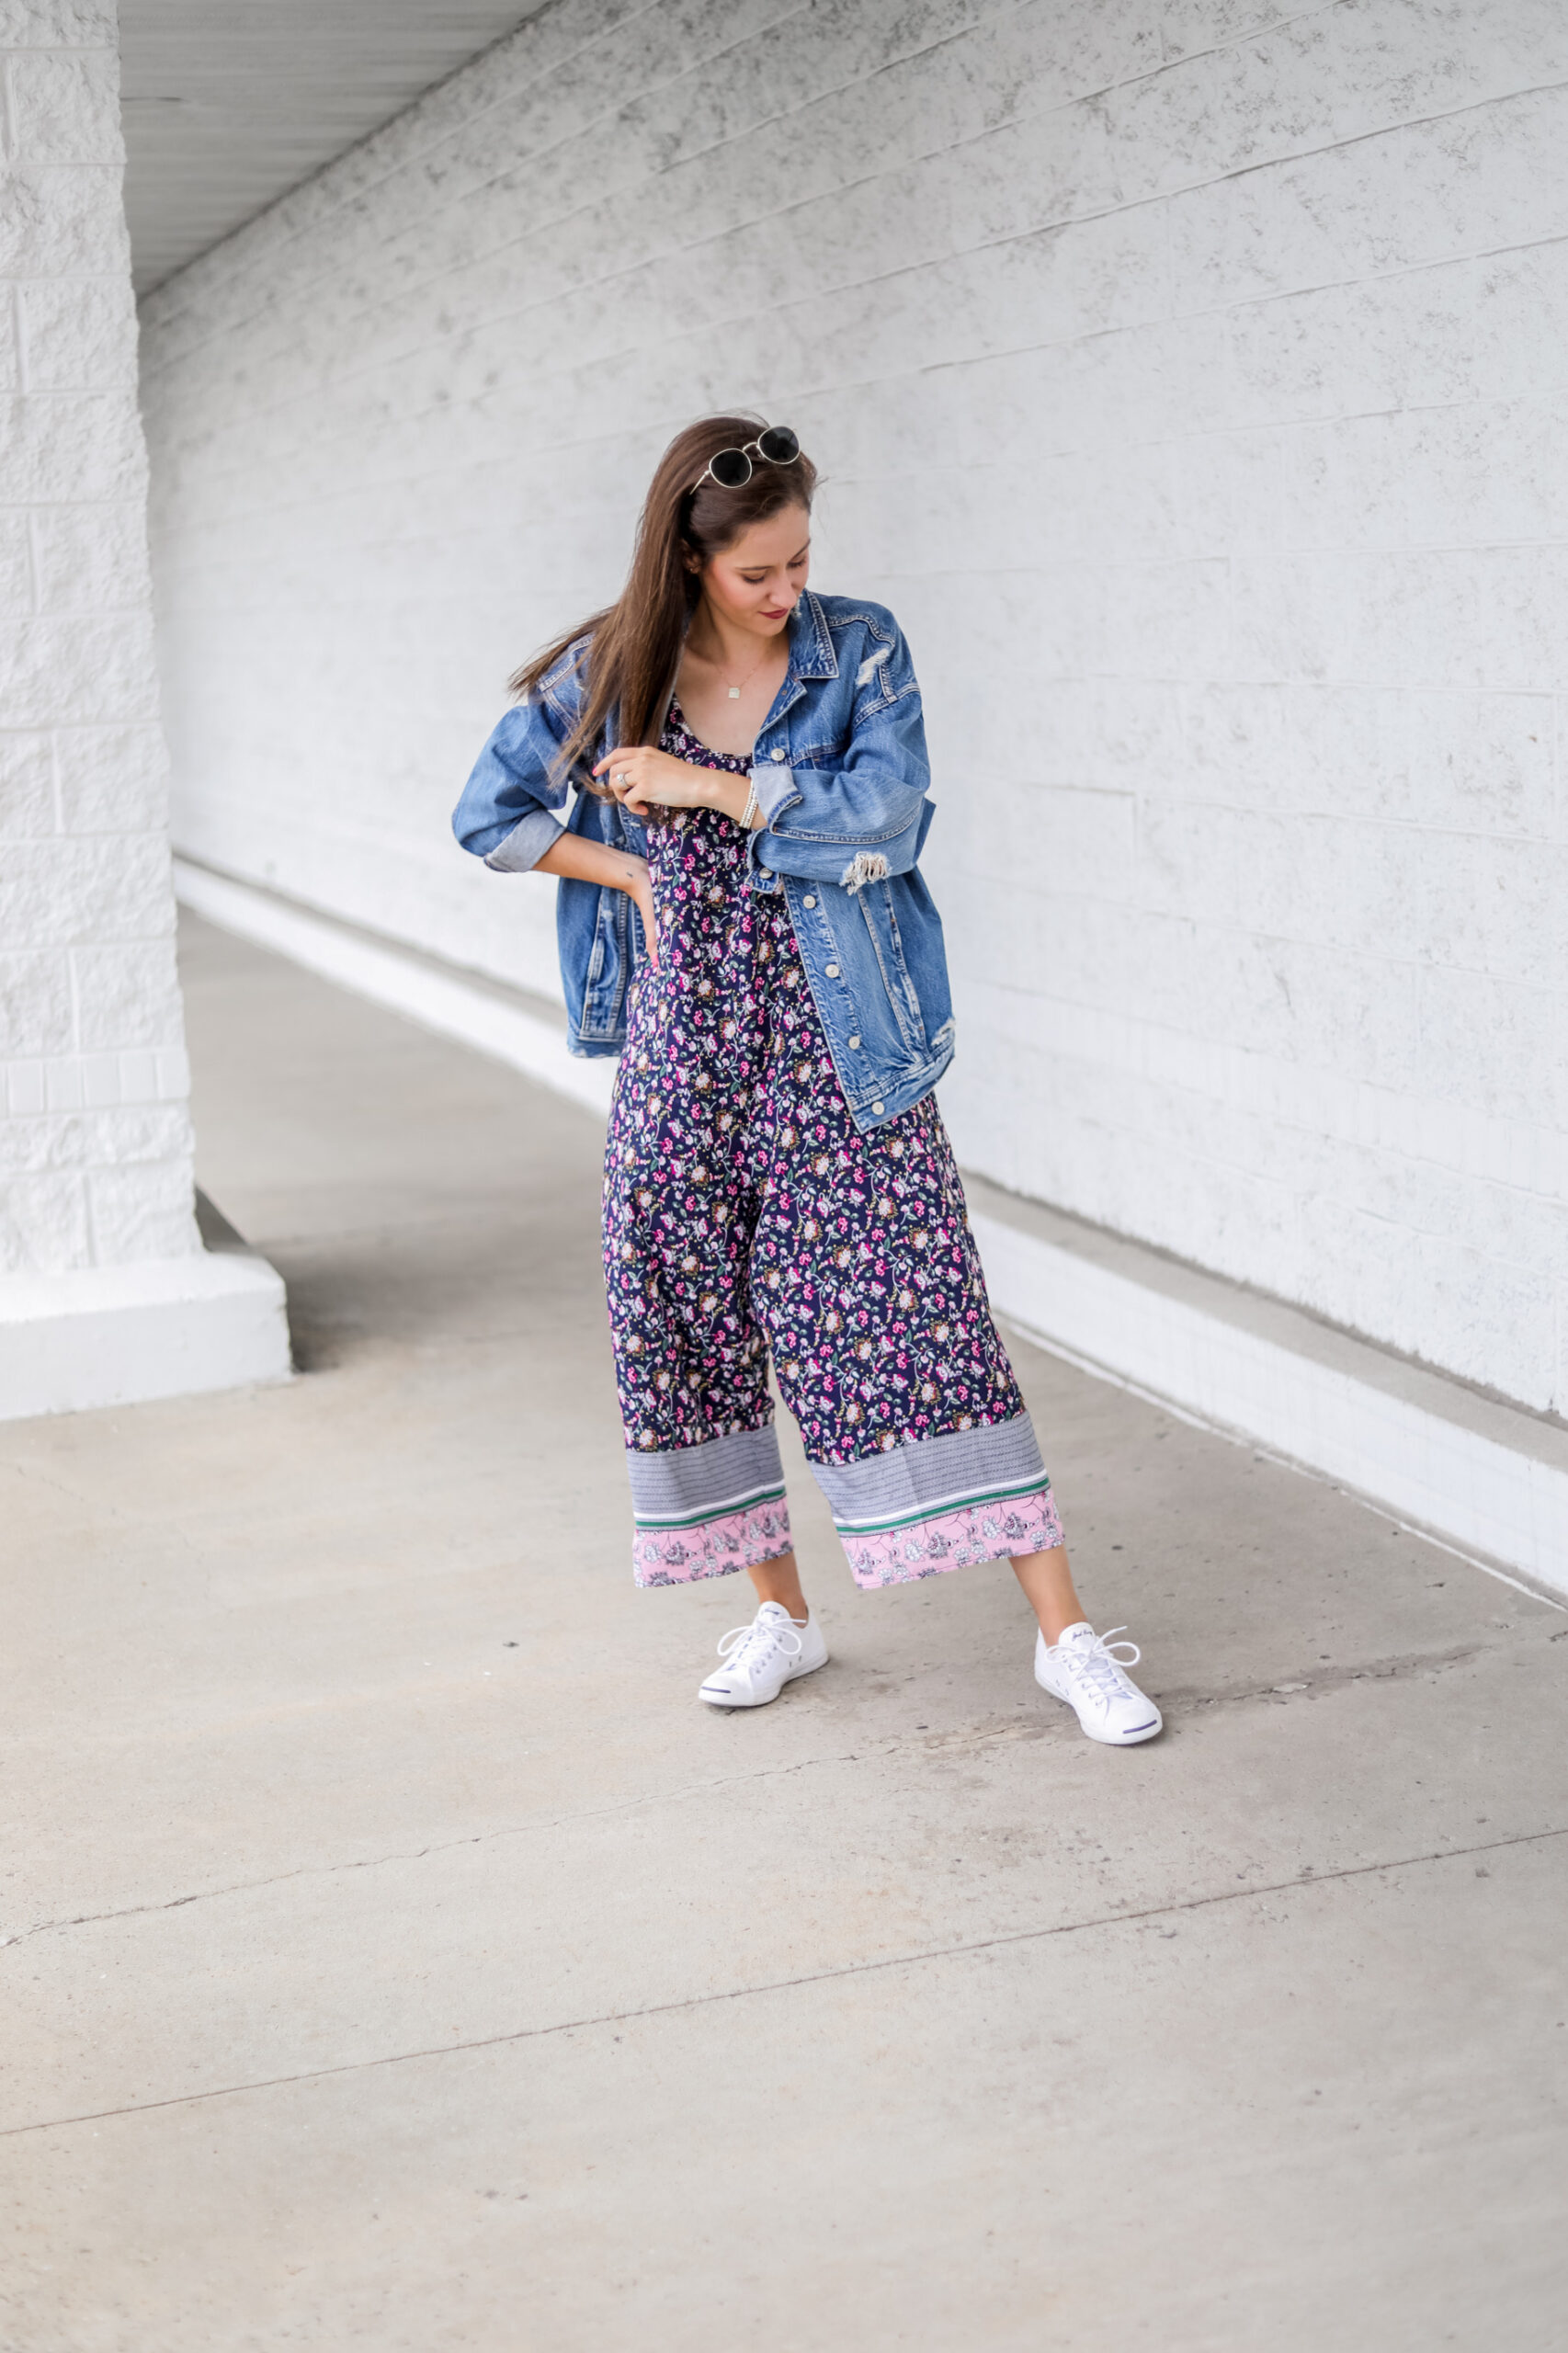 $17 AMAZON JUMPSUIT - Layering a pretty, flowy floral prints navy jumpsuit to transition into fall!